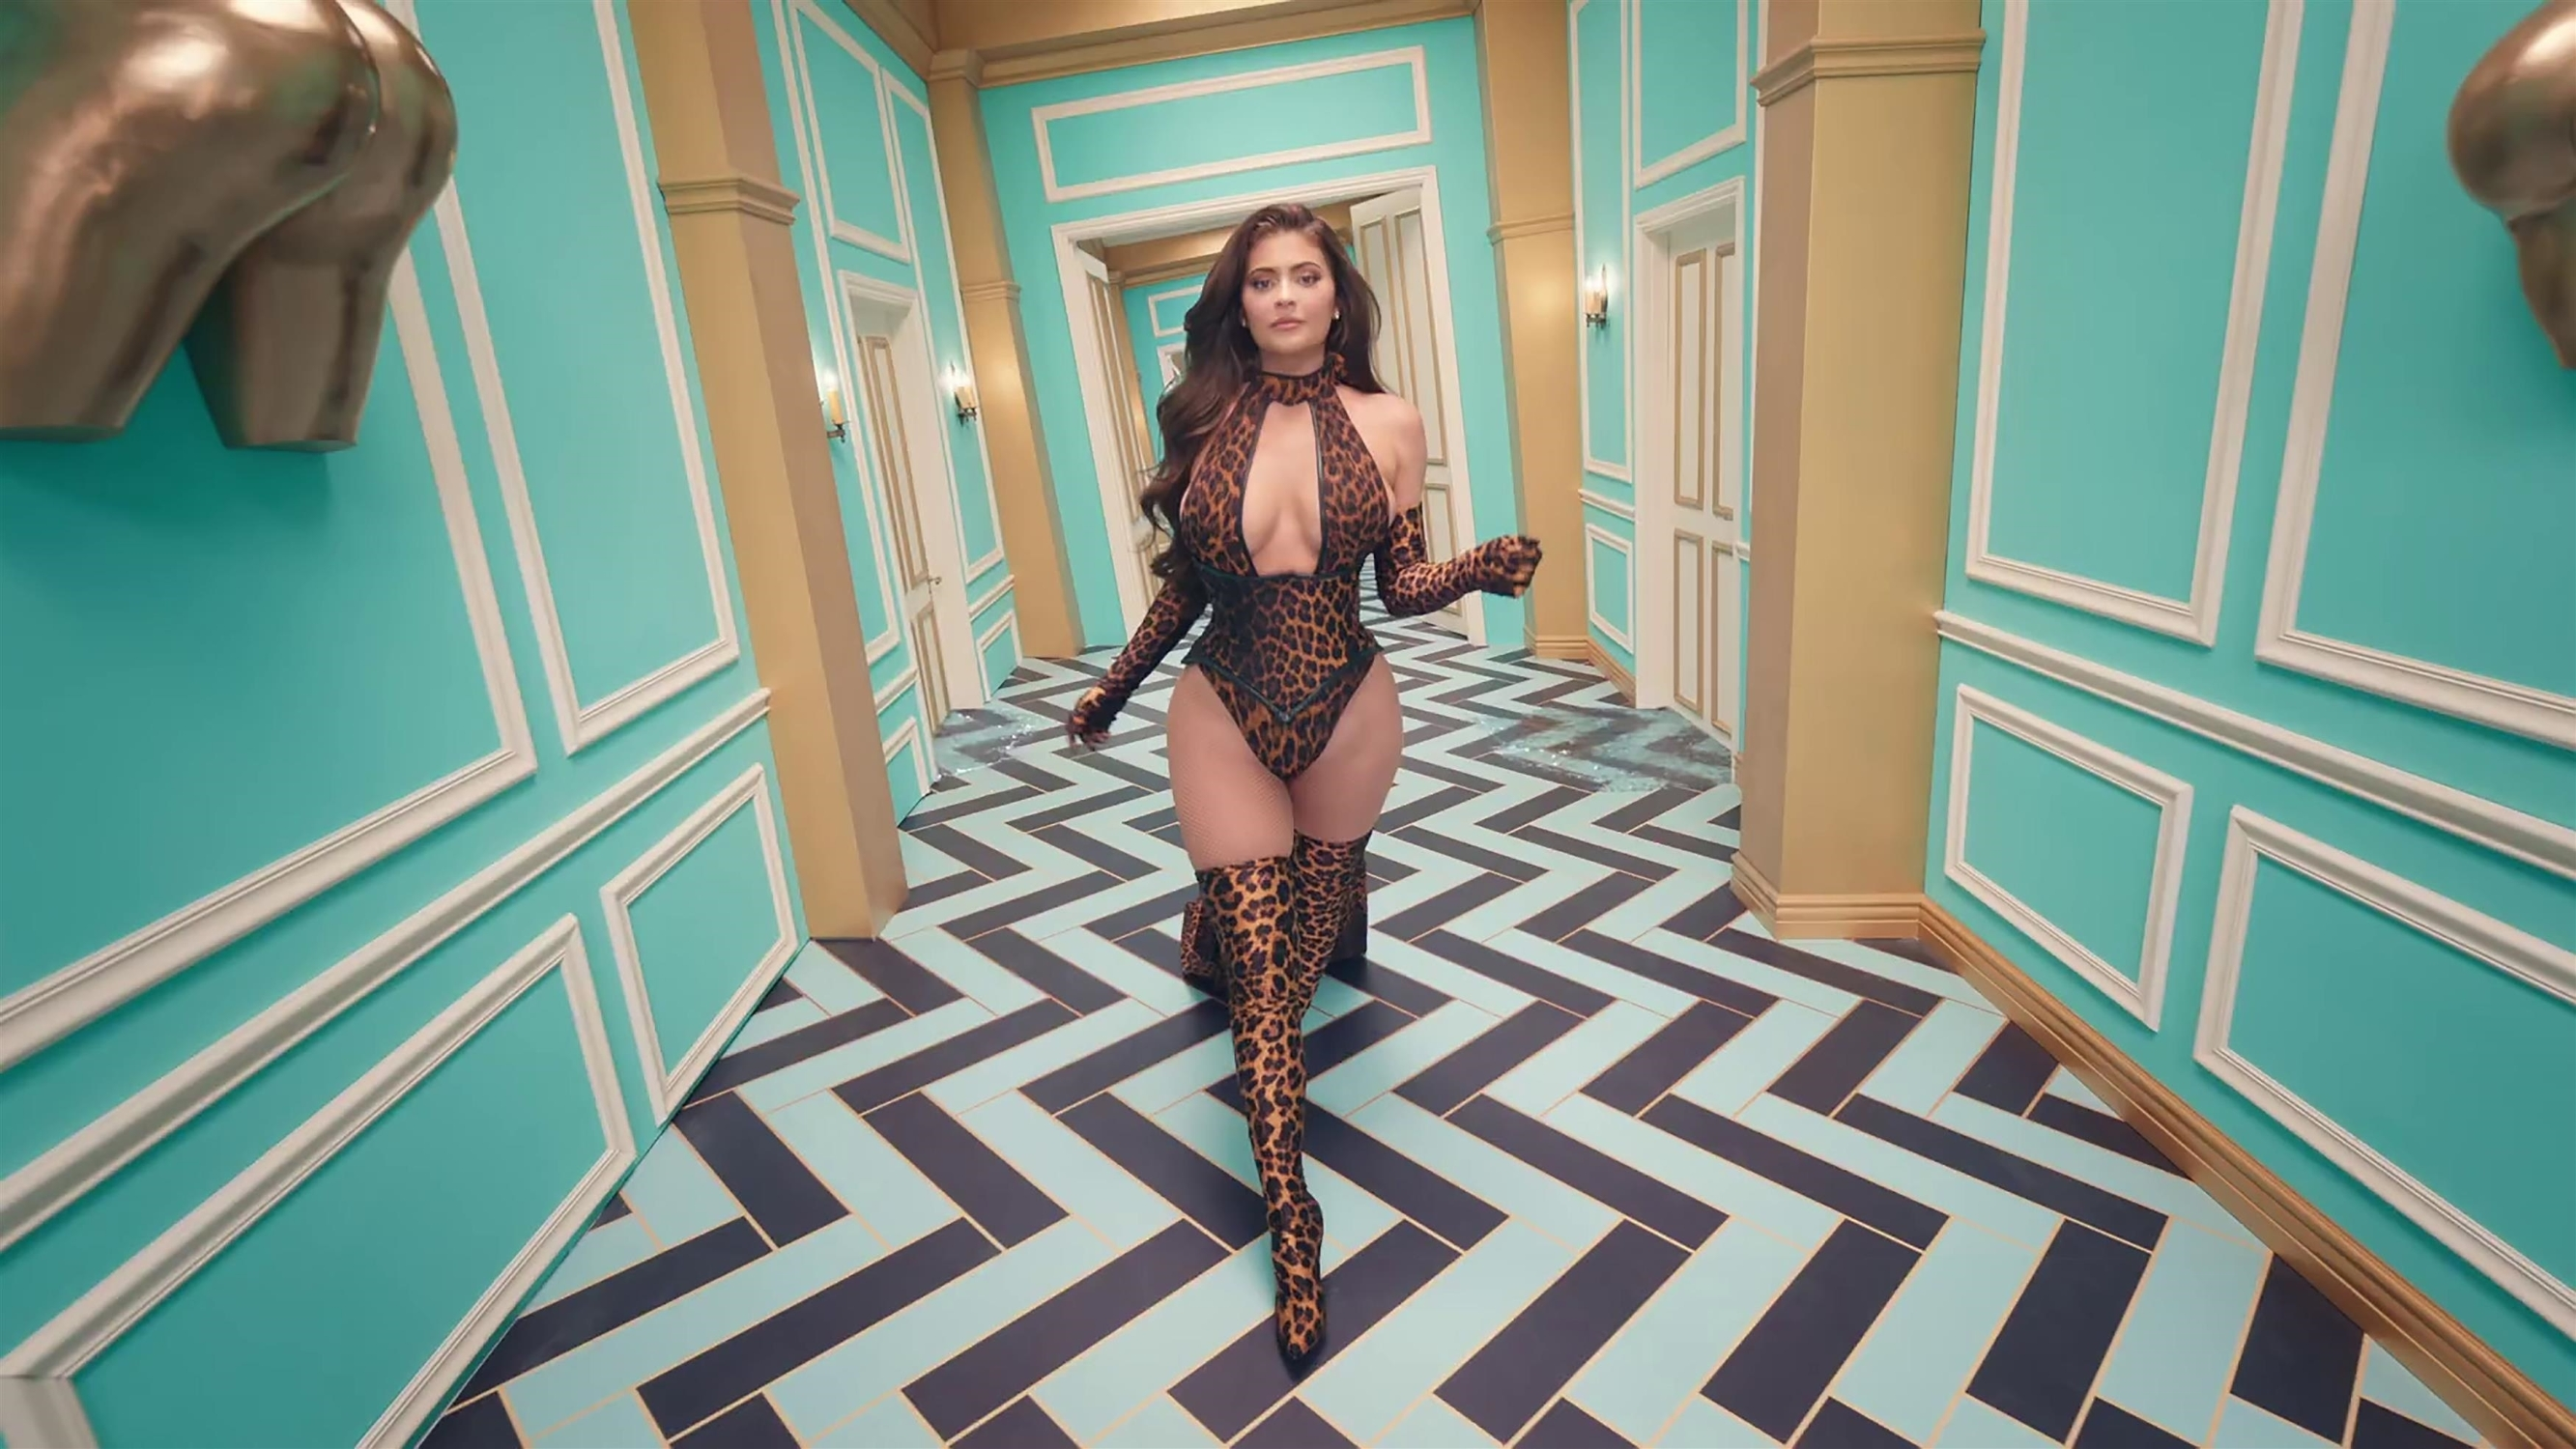 Los Angeles,   - Kylie Jenner makes an appearance in Cardi B and Megan Thee Stallion's 'WAP' music video    ---------           *  USA: +1 310 798 9111 / usasales@backgrid.com  *UK Clients - Pictures Containing Children Please Pixelate Face Prior To Publication*,Image: 550619595, License: Rights-managed, Restrictions: RIGHTS: WORLDWIDE EXCEPT IN UNITED STATES, Model Release: no, Credit line: BACKGRID / Backgrid UK / Profimedia